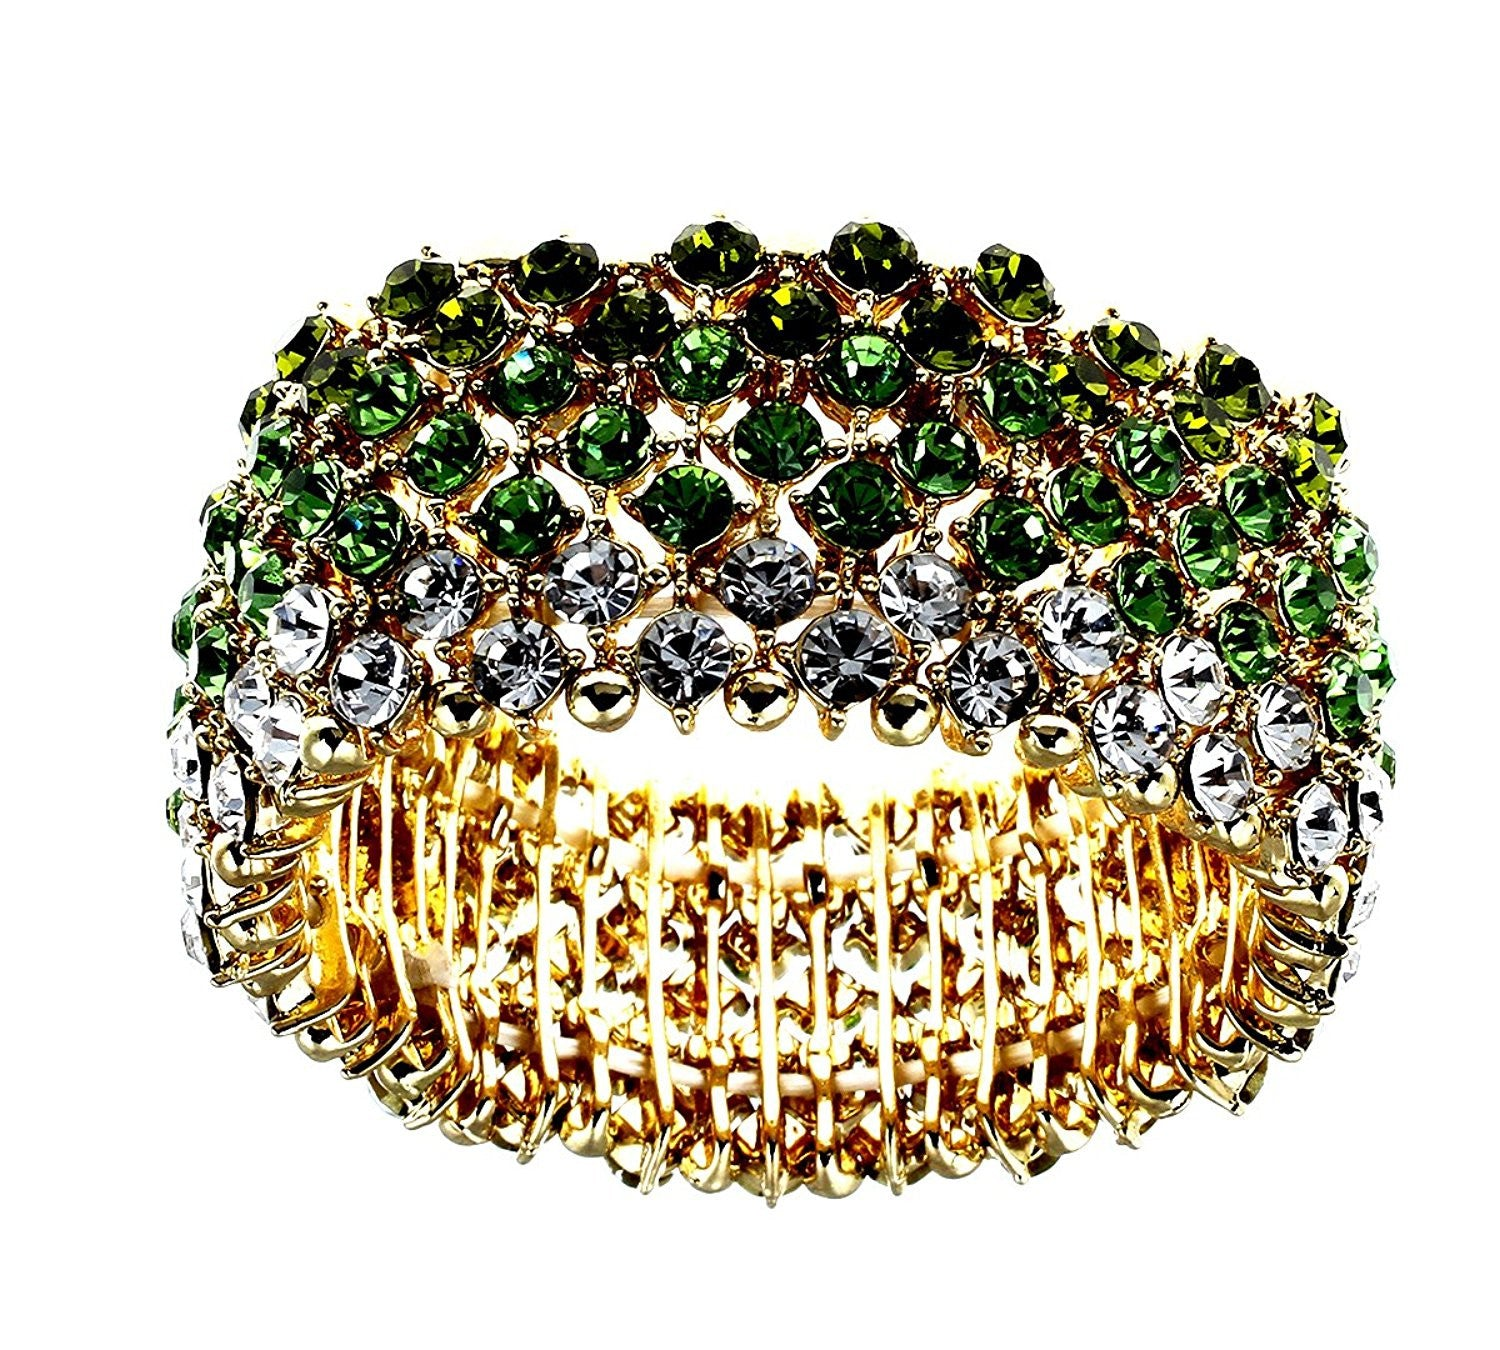 StunningBoutique Swarovski Crystal Bangle Bracelet made with Austrian Crystal Elements for Women 4677e4Mh